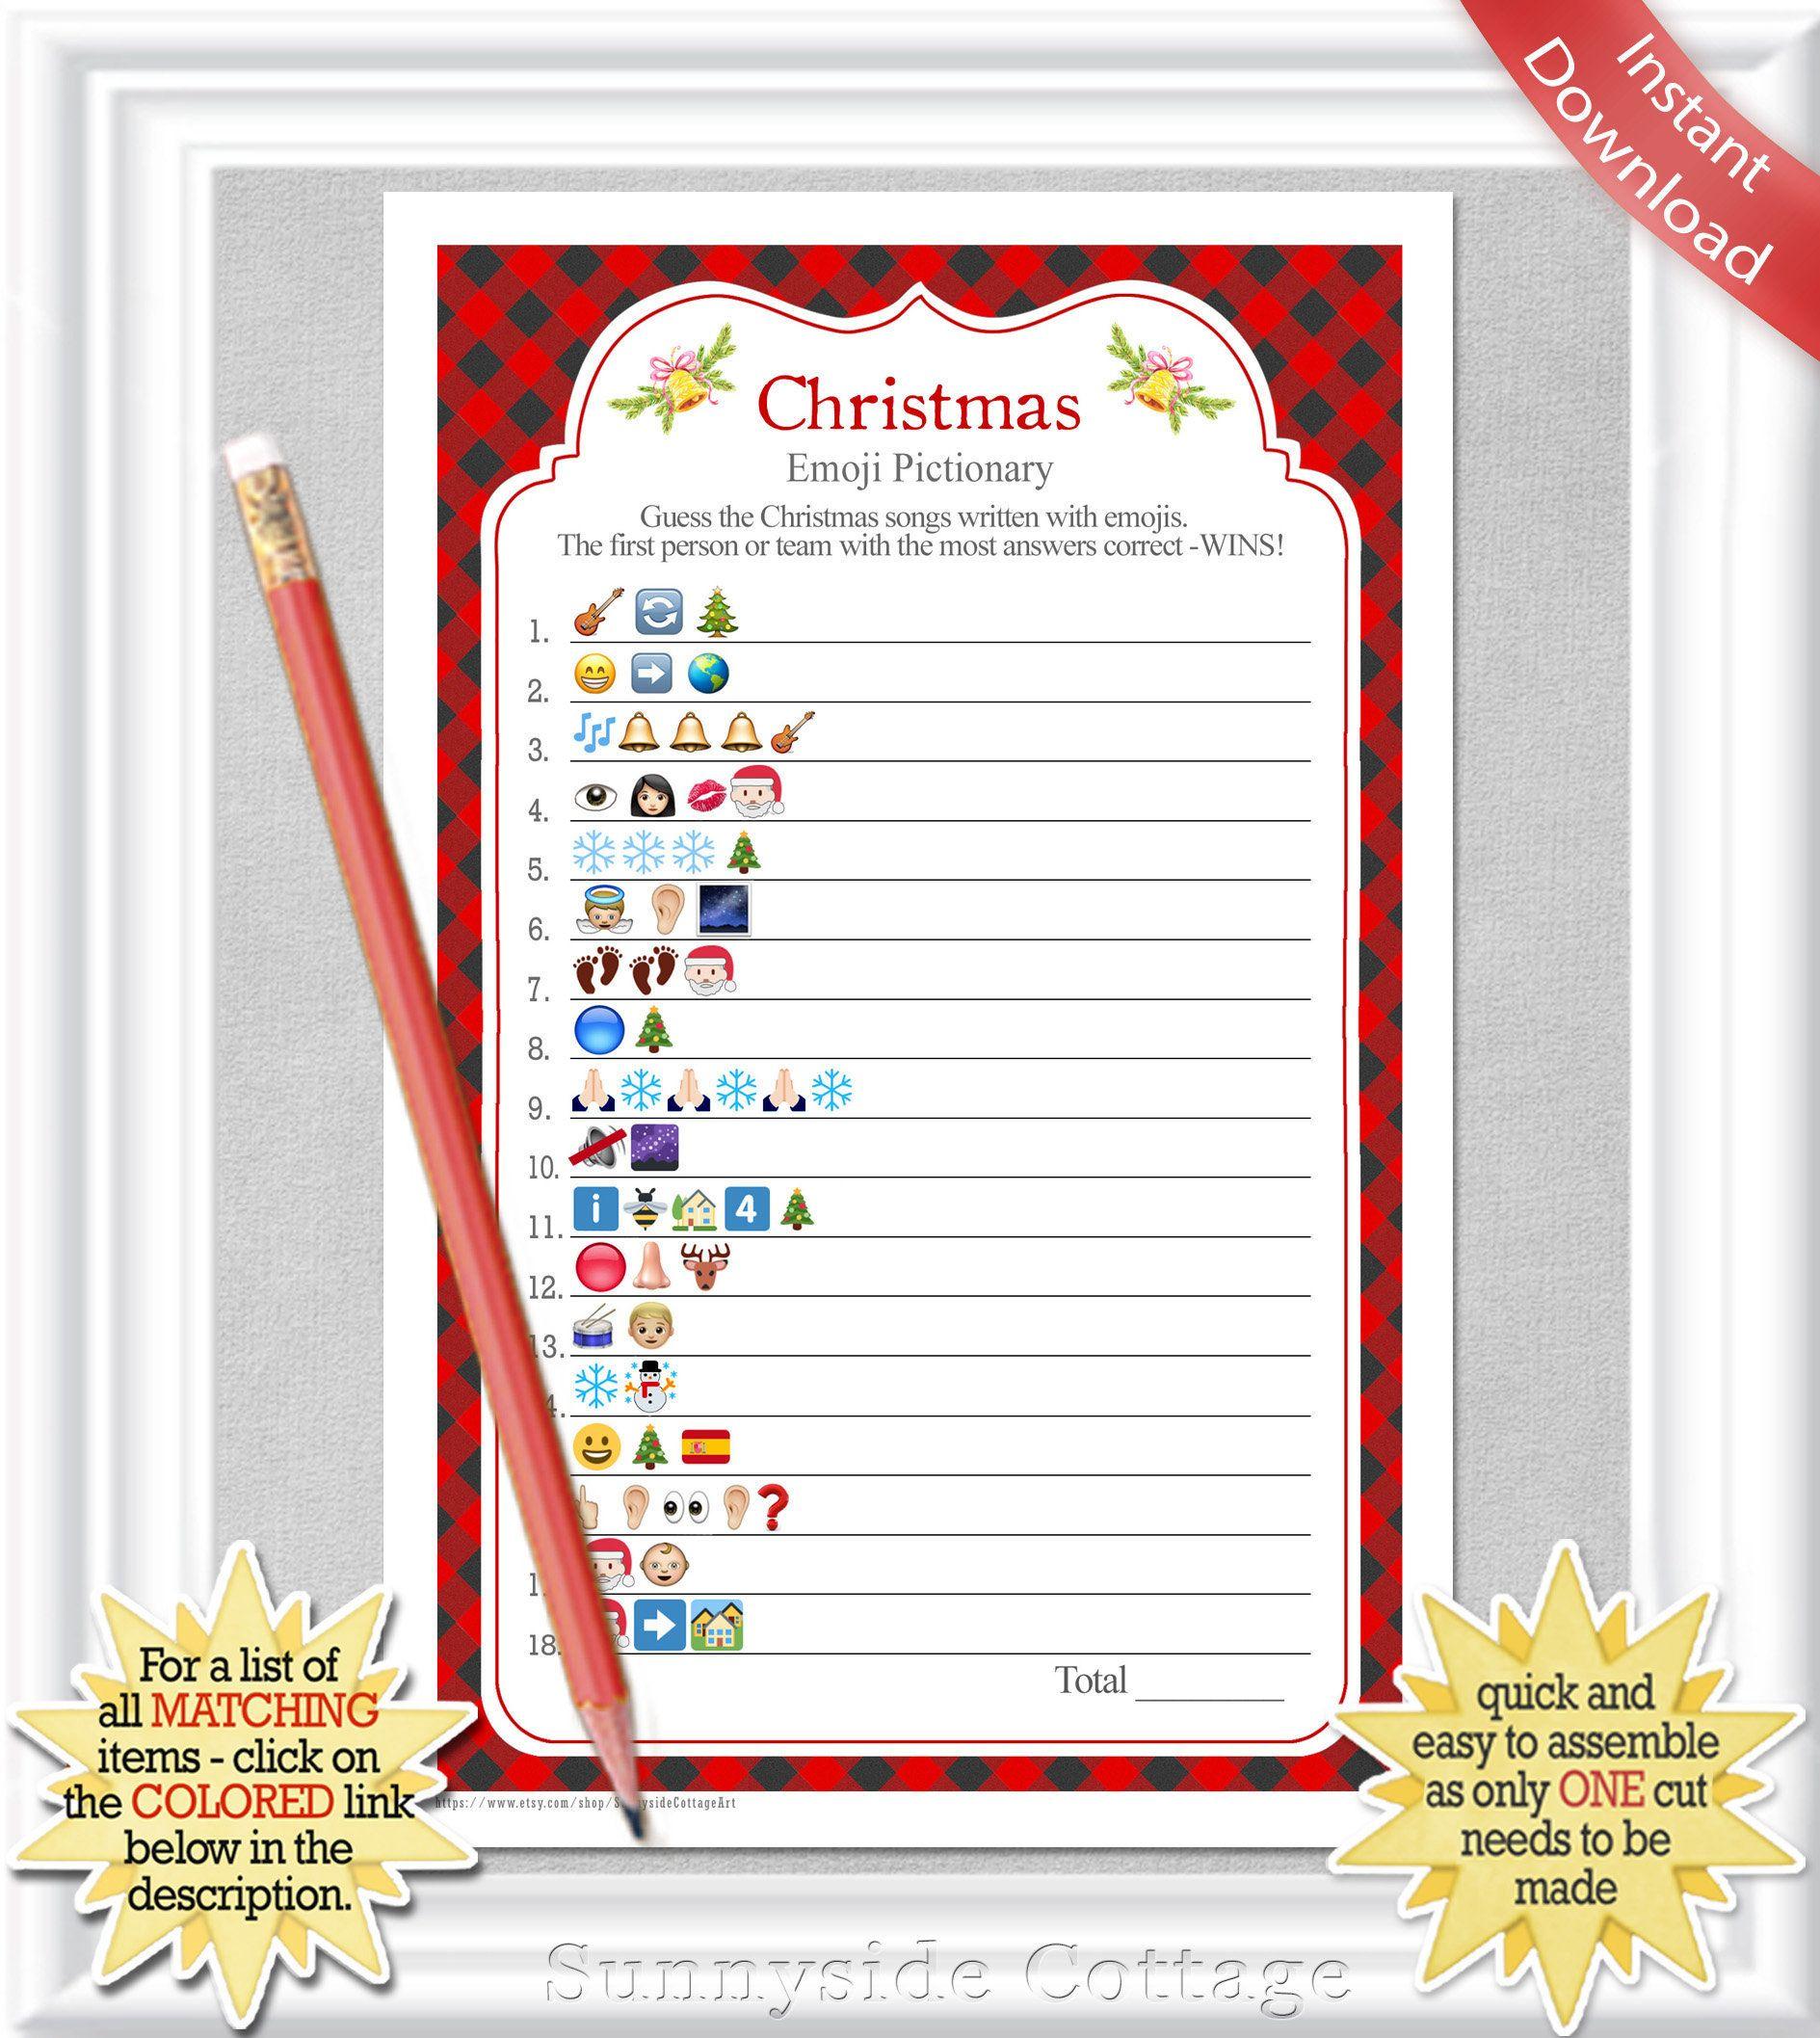 Christmas Songs Emoji Pictionary With A Red Buffalo Check Background Christmas Party Game Answers Included Instant Download Diy Printable Emoji Christmas Christmas Party Games Christmas Games